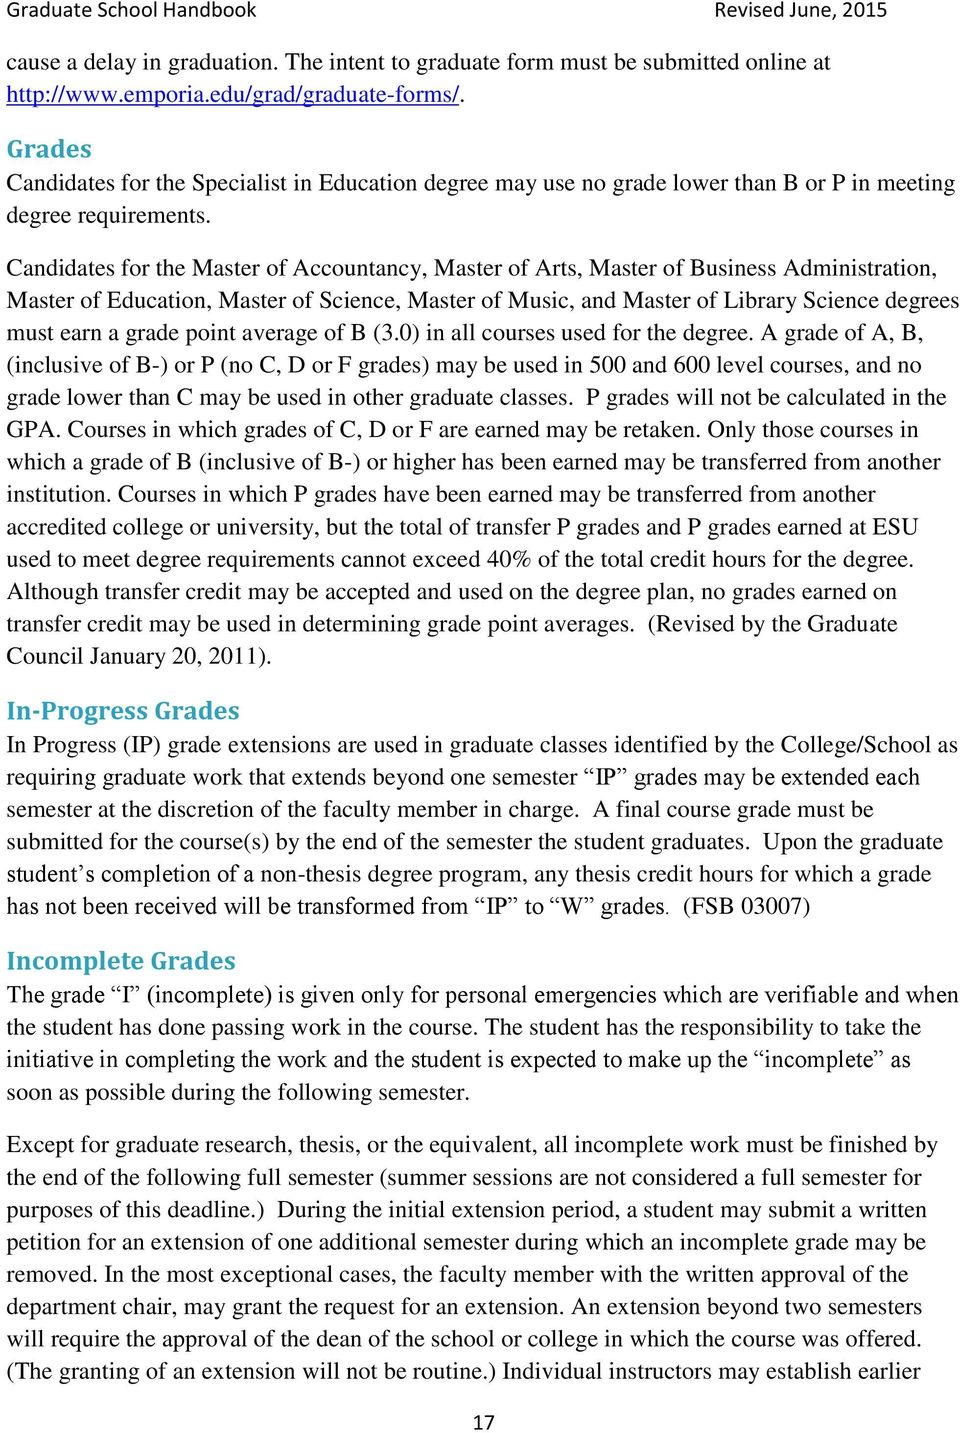 Candidates for the Master of Accountancy, Master of Arts, Master of Business Administration, Master of Education, Master of Science, Master of Music, and Master of Library Science degrees must earn a